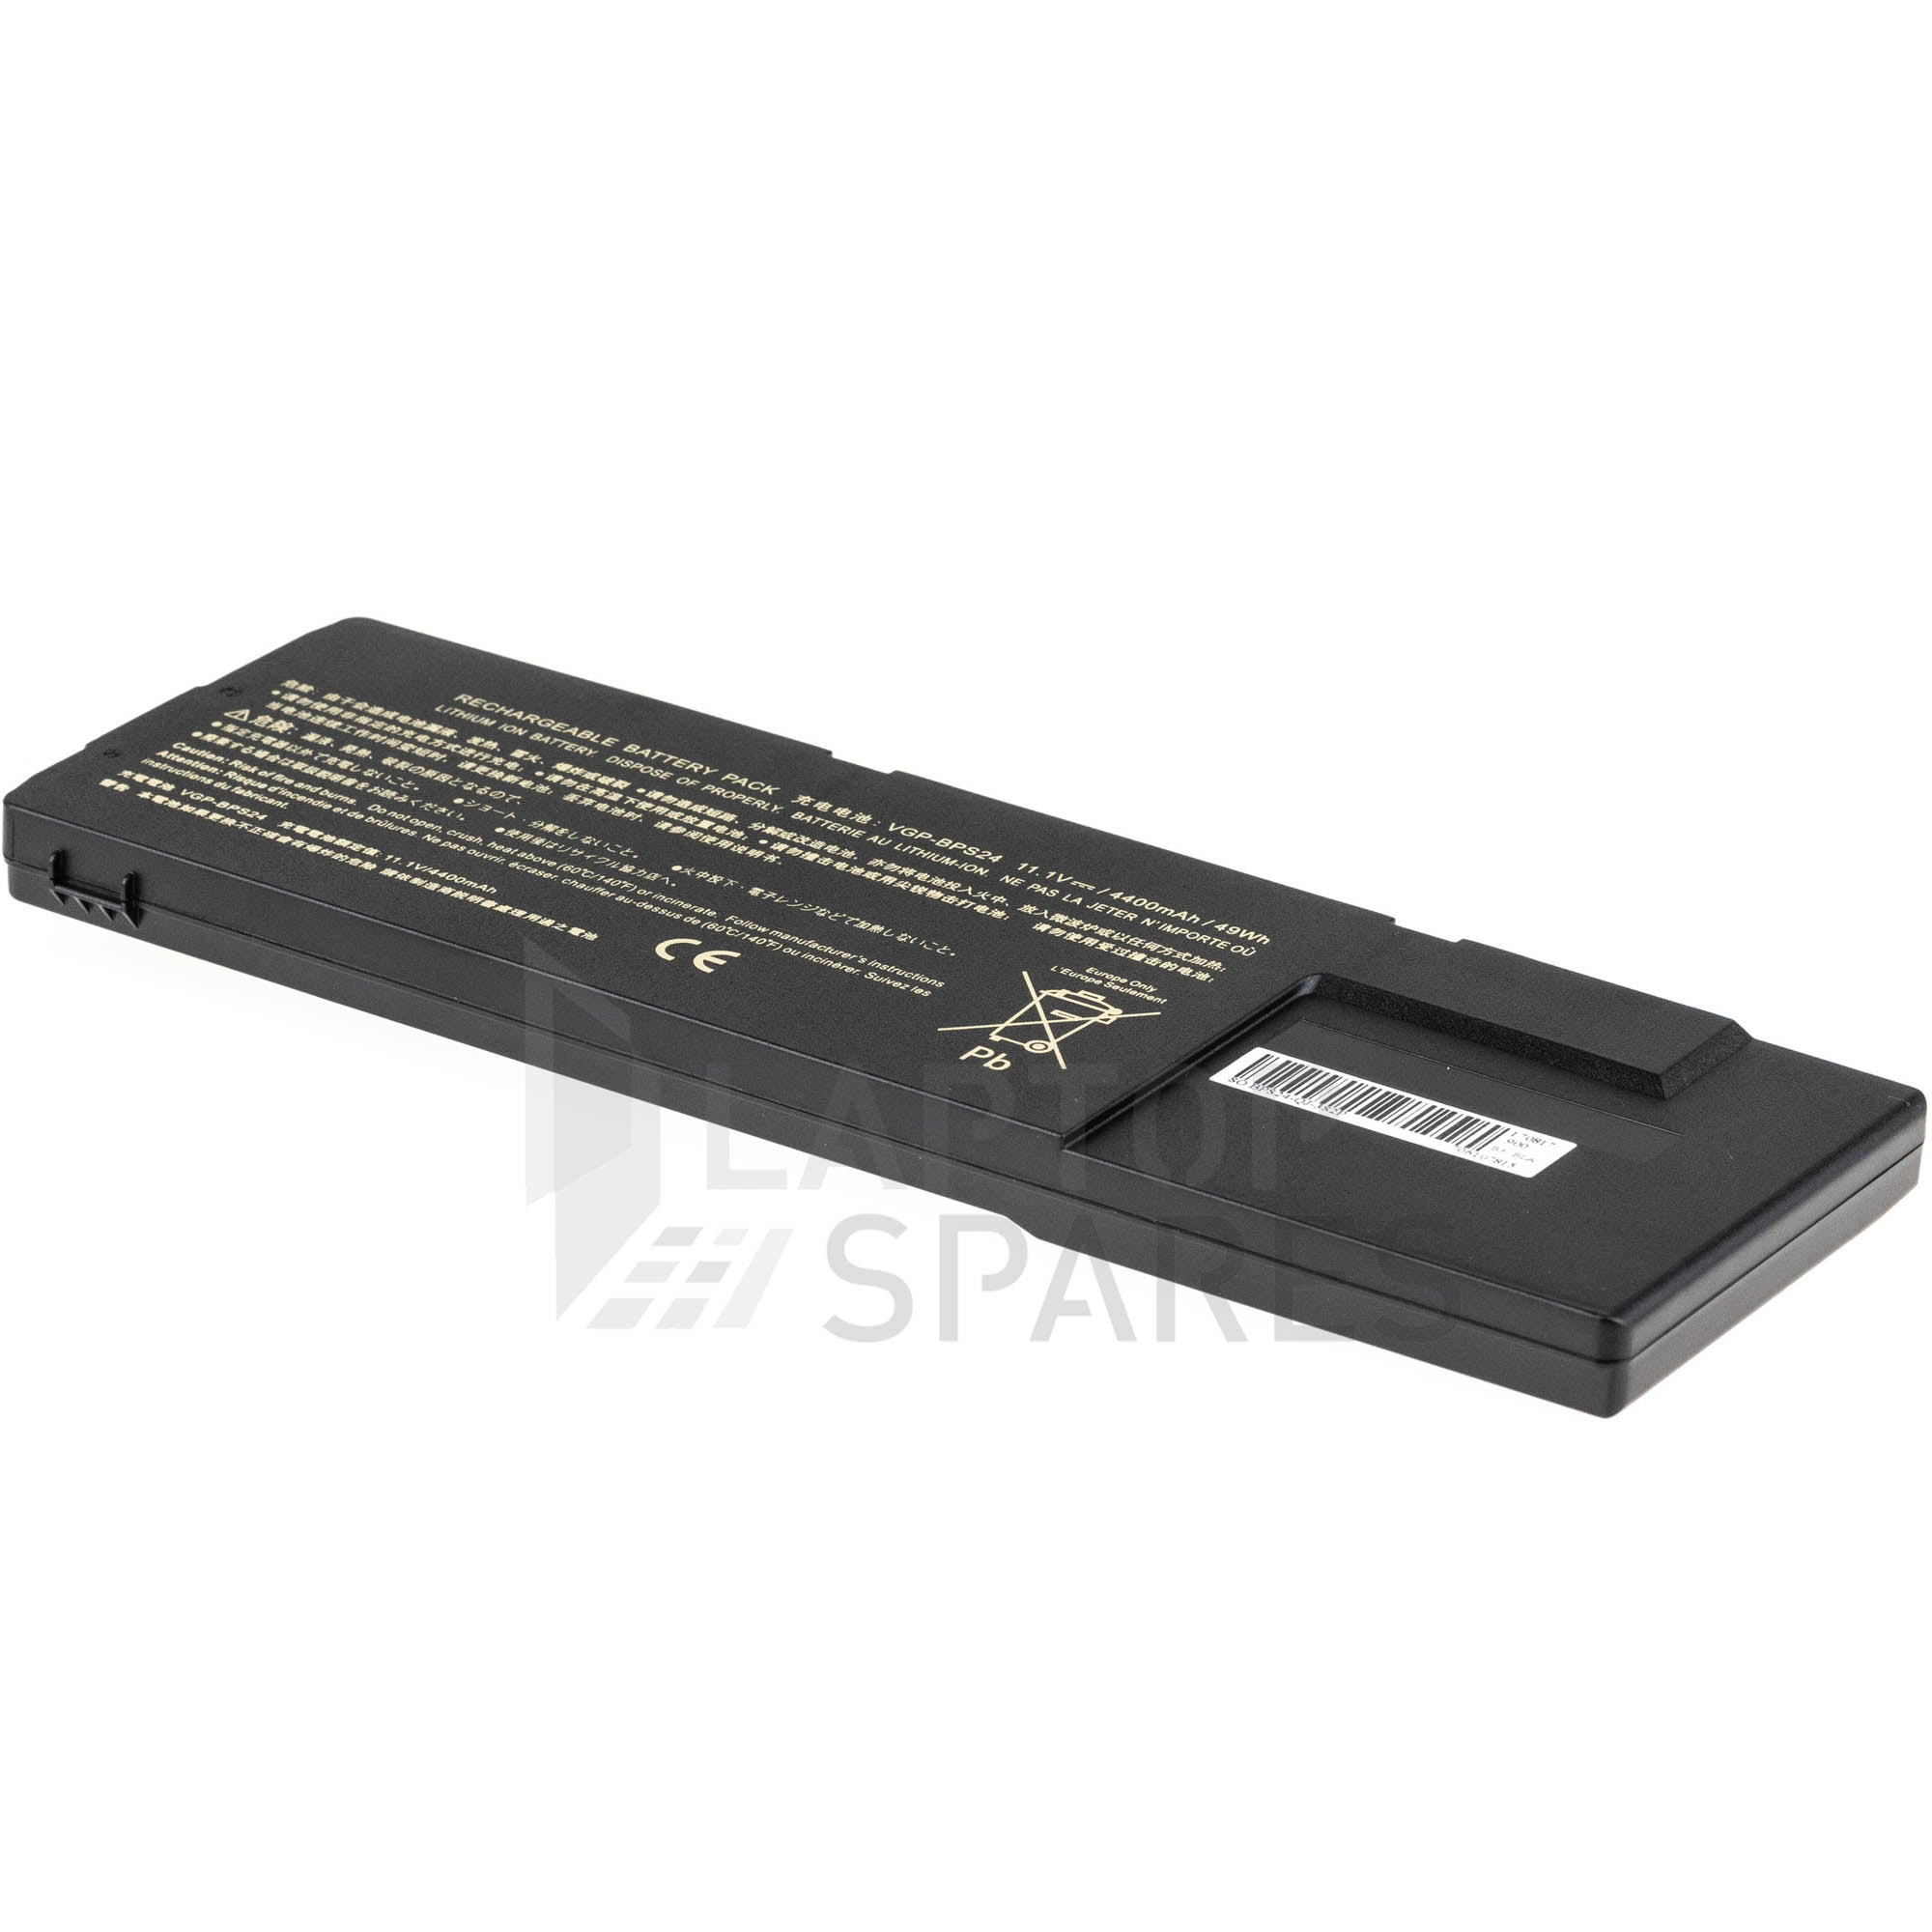 Sony Vaio VGP BPS24 4400mAh 6 Cell Battery